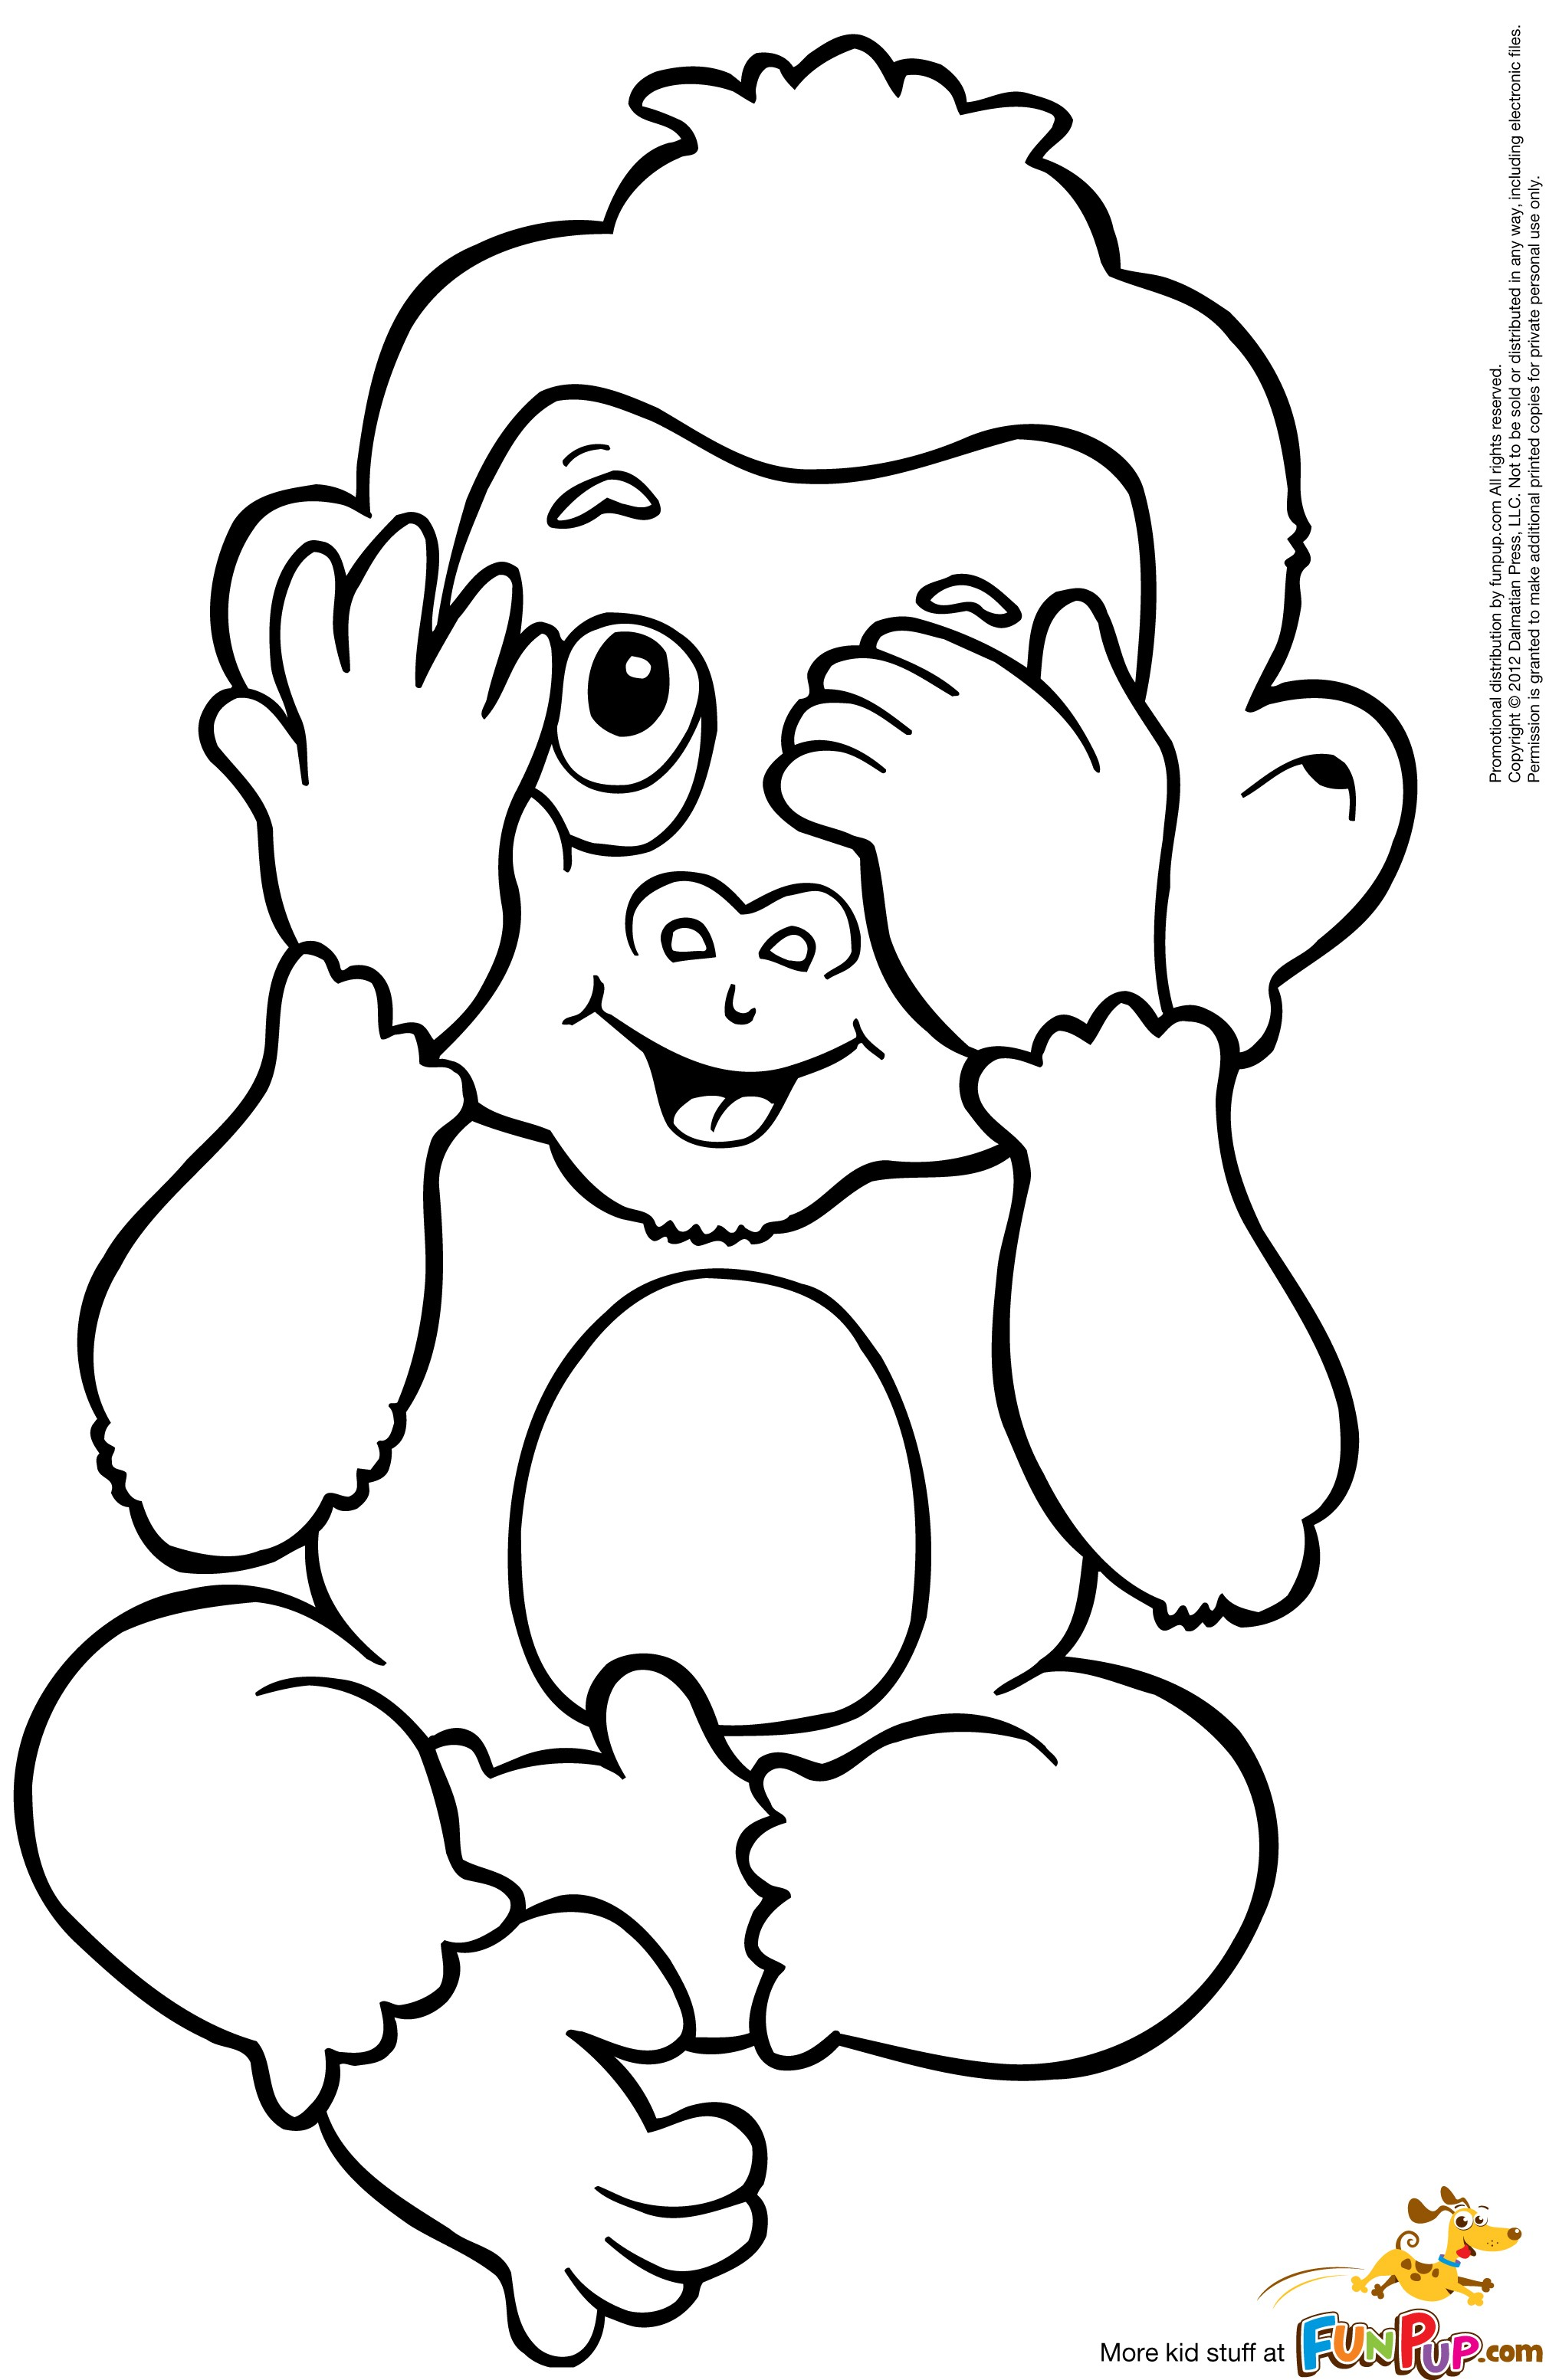 2034x3106 Baby Monkey Coloring Pages To Download And Print For Free